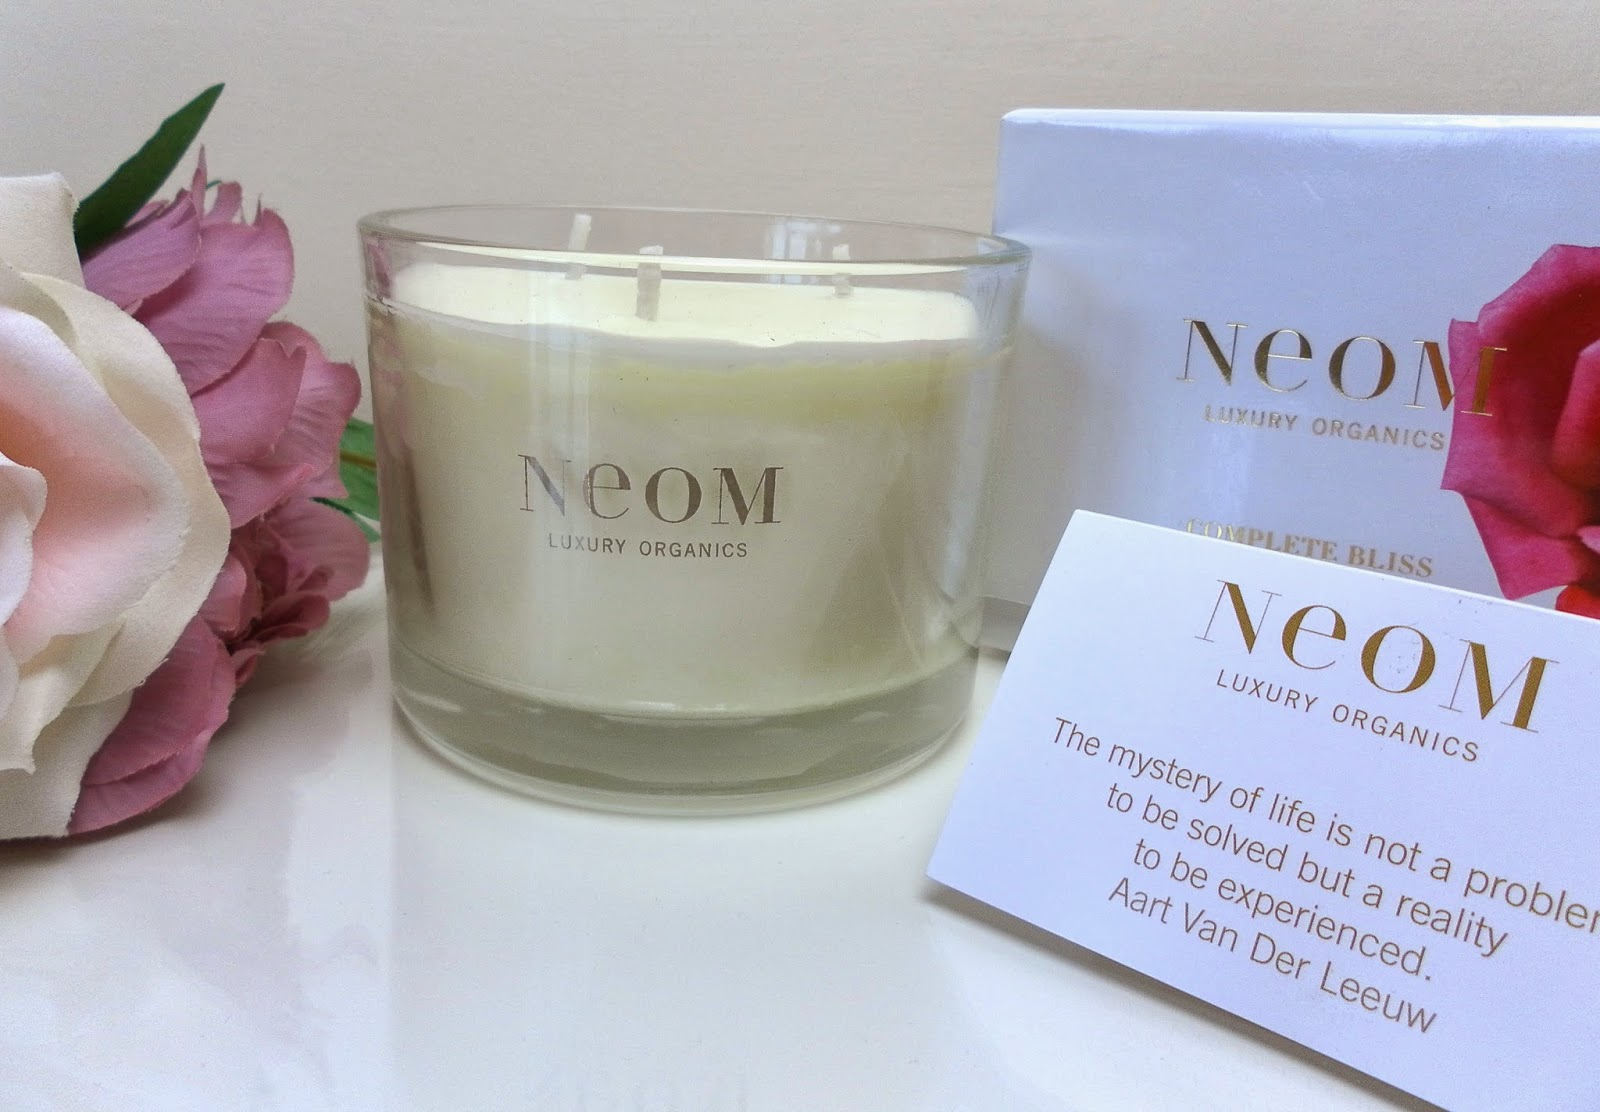 NEOM Complete Bliss